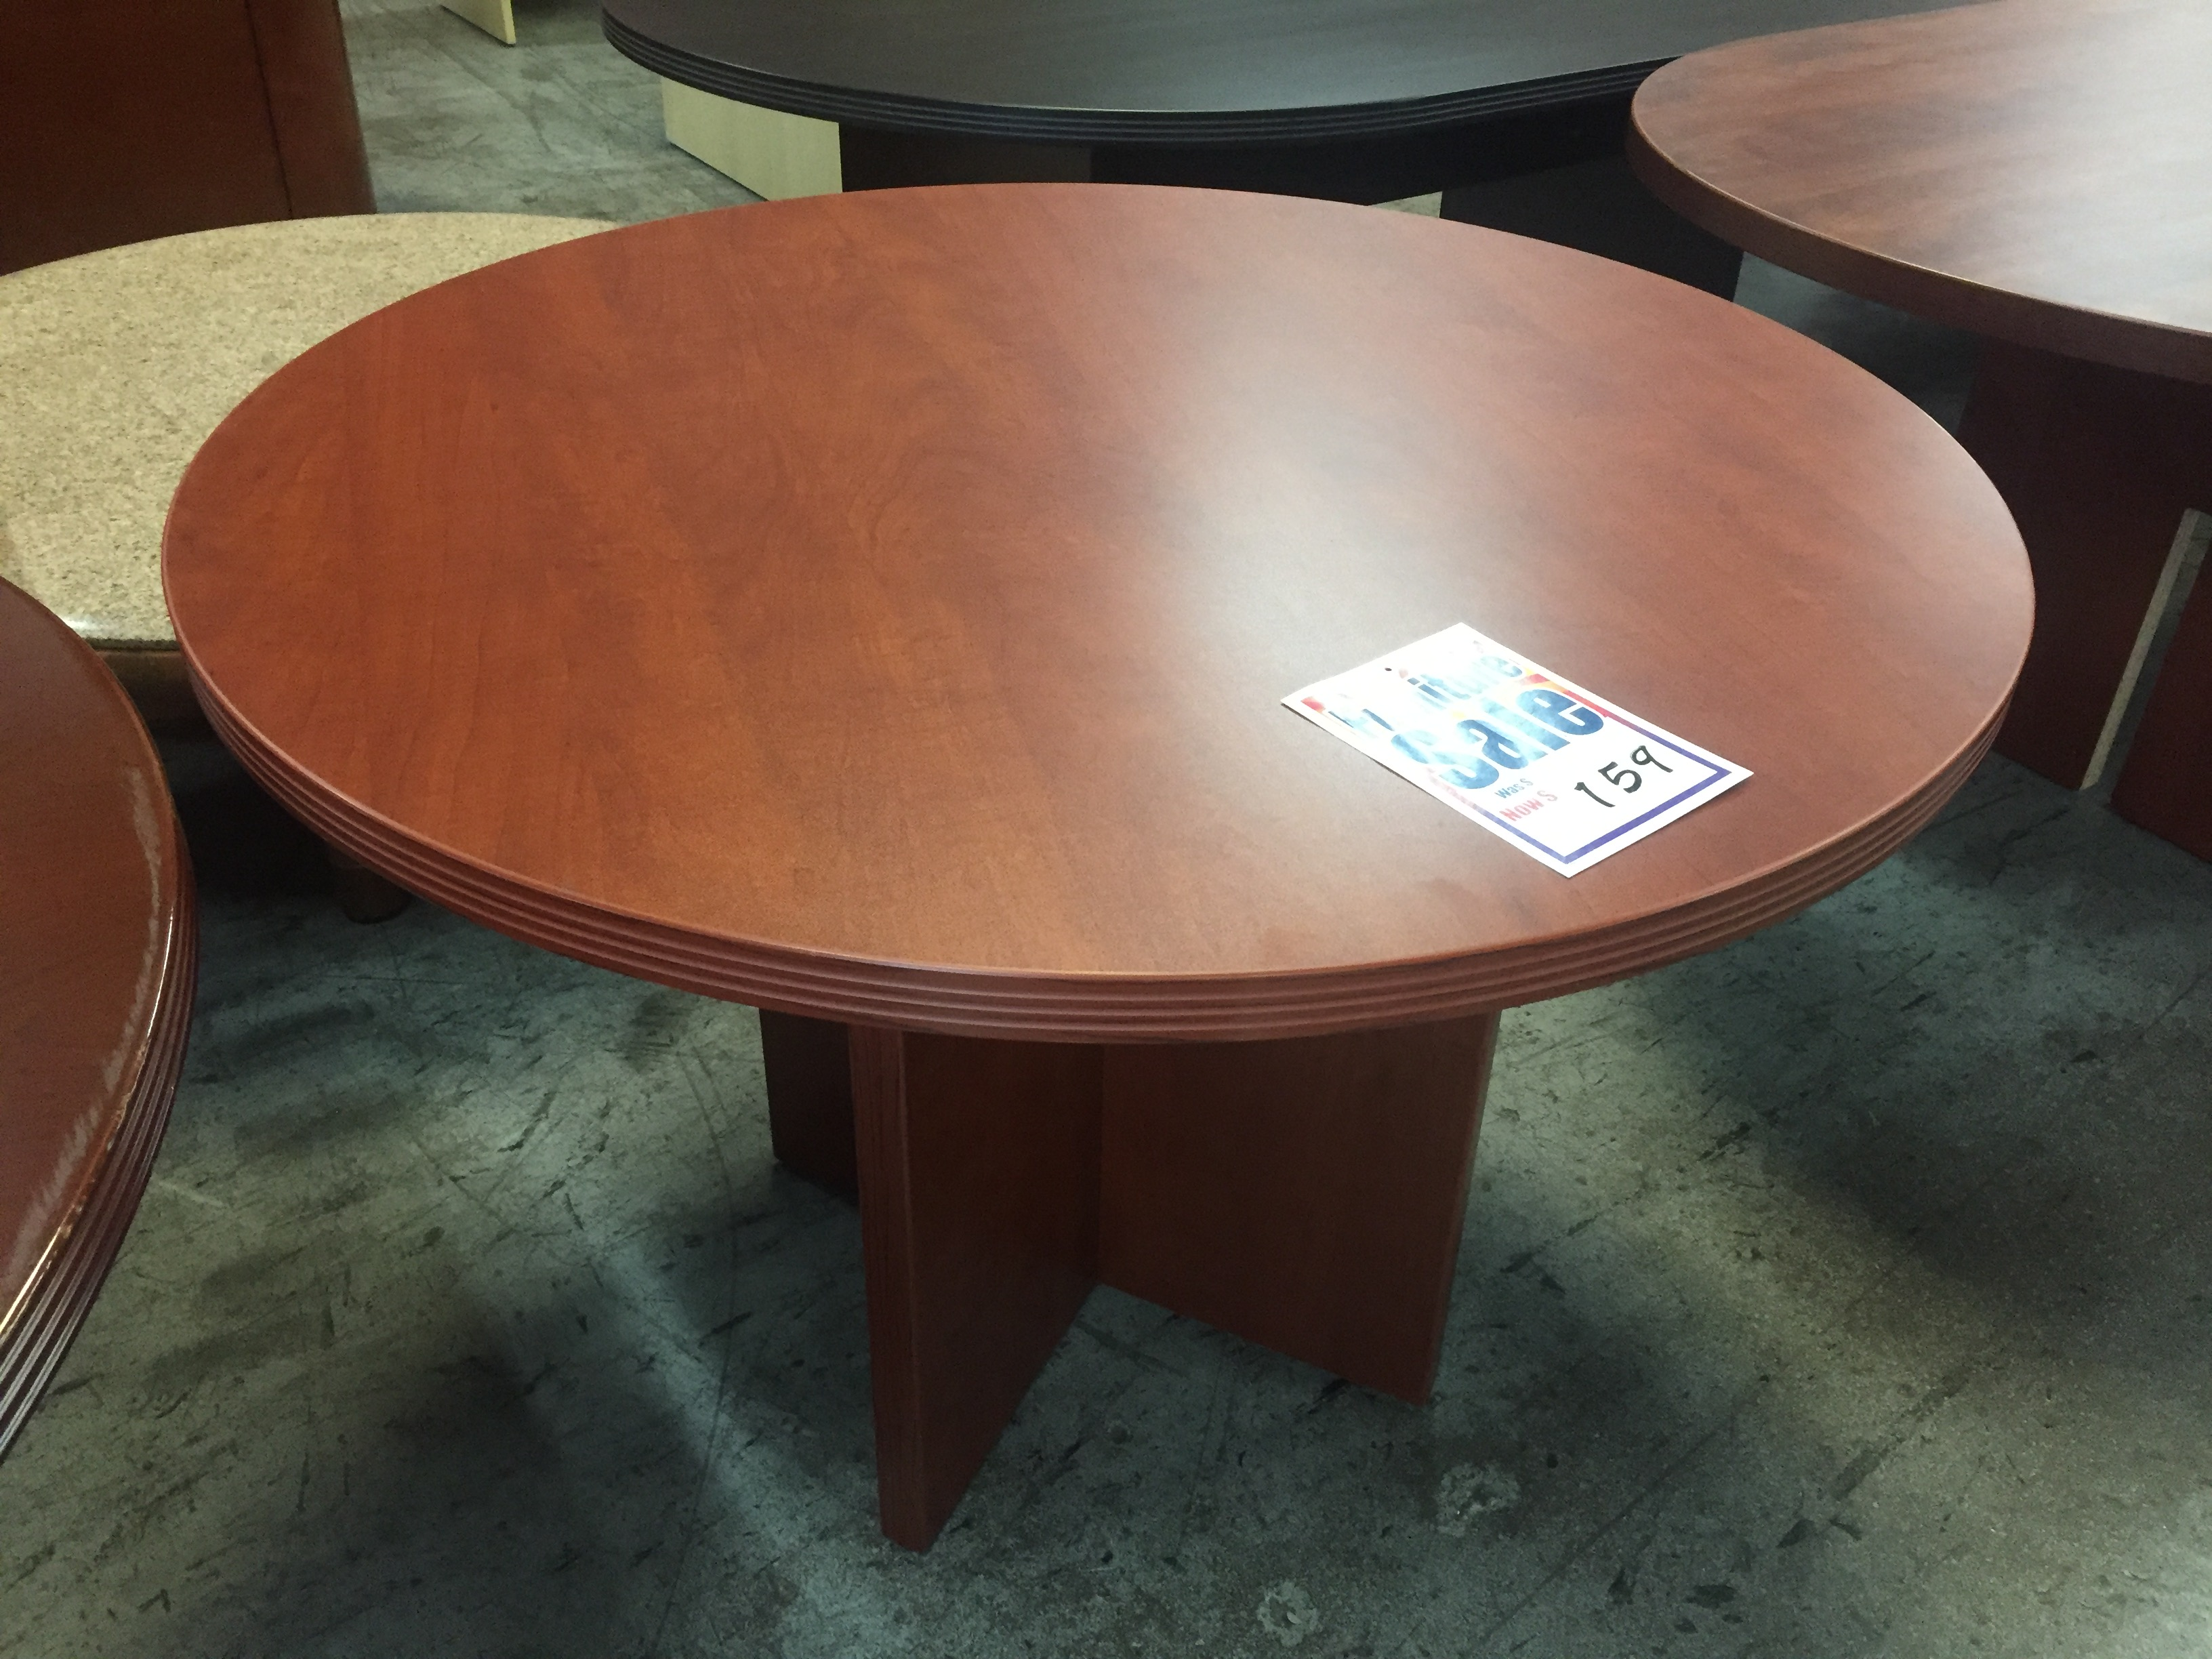 Cherry Round Table New And Used Office Furniture In Los Angeles And Orange County Nationwide